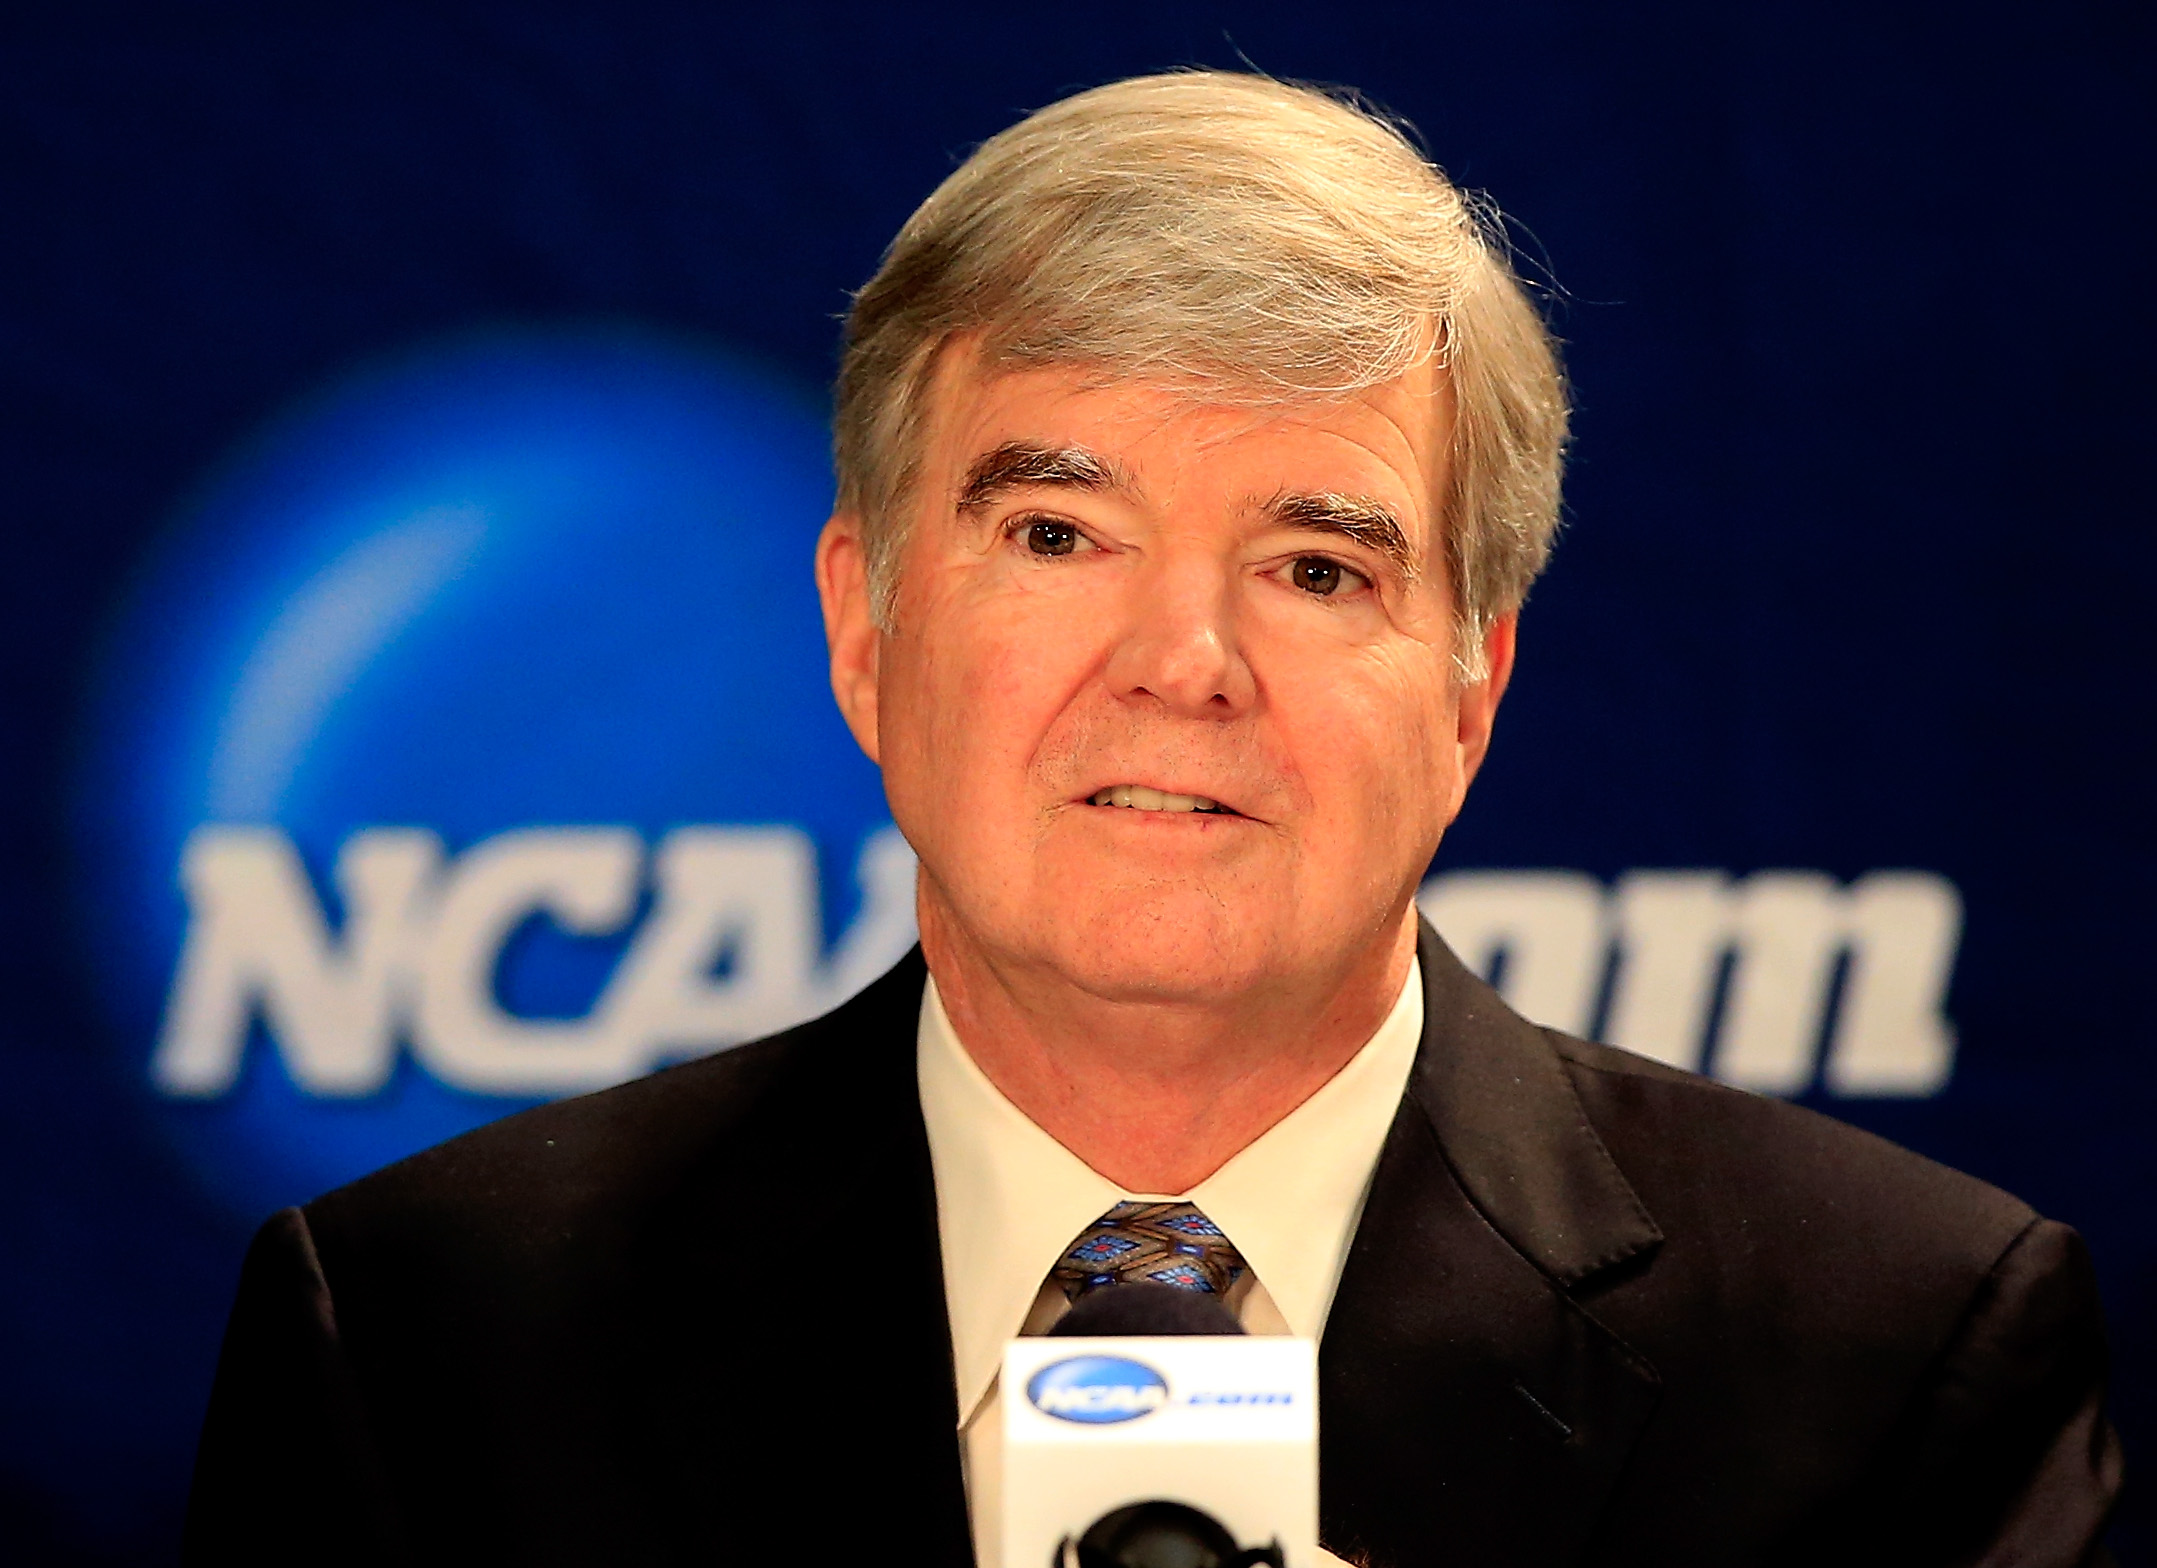 NCAA President Mark Emmert speaks to the media during a press conference at AT&T Stadium on April 6, 2014 in Arlington, Texas.